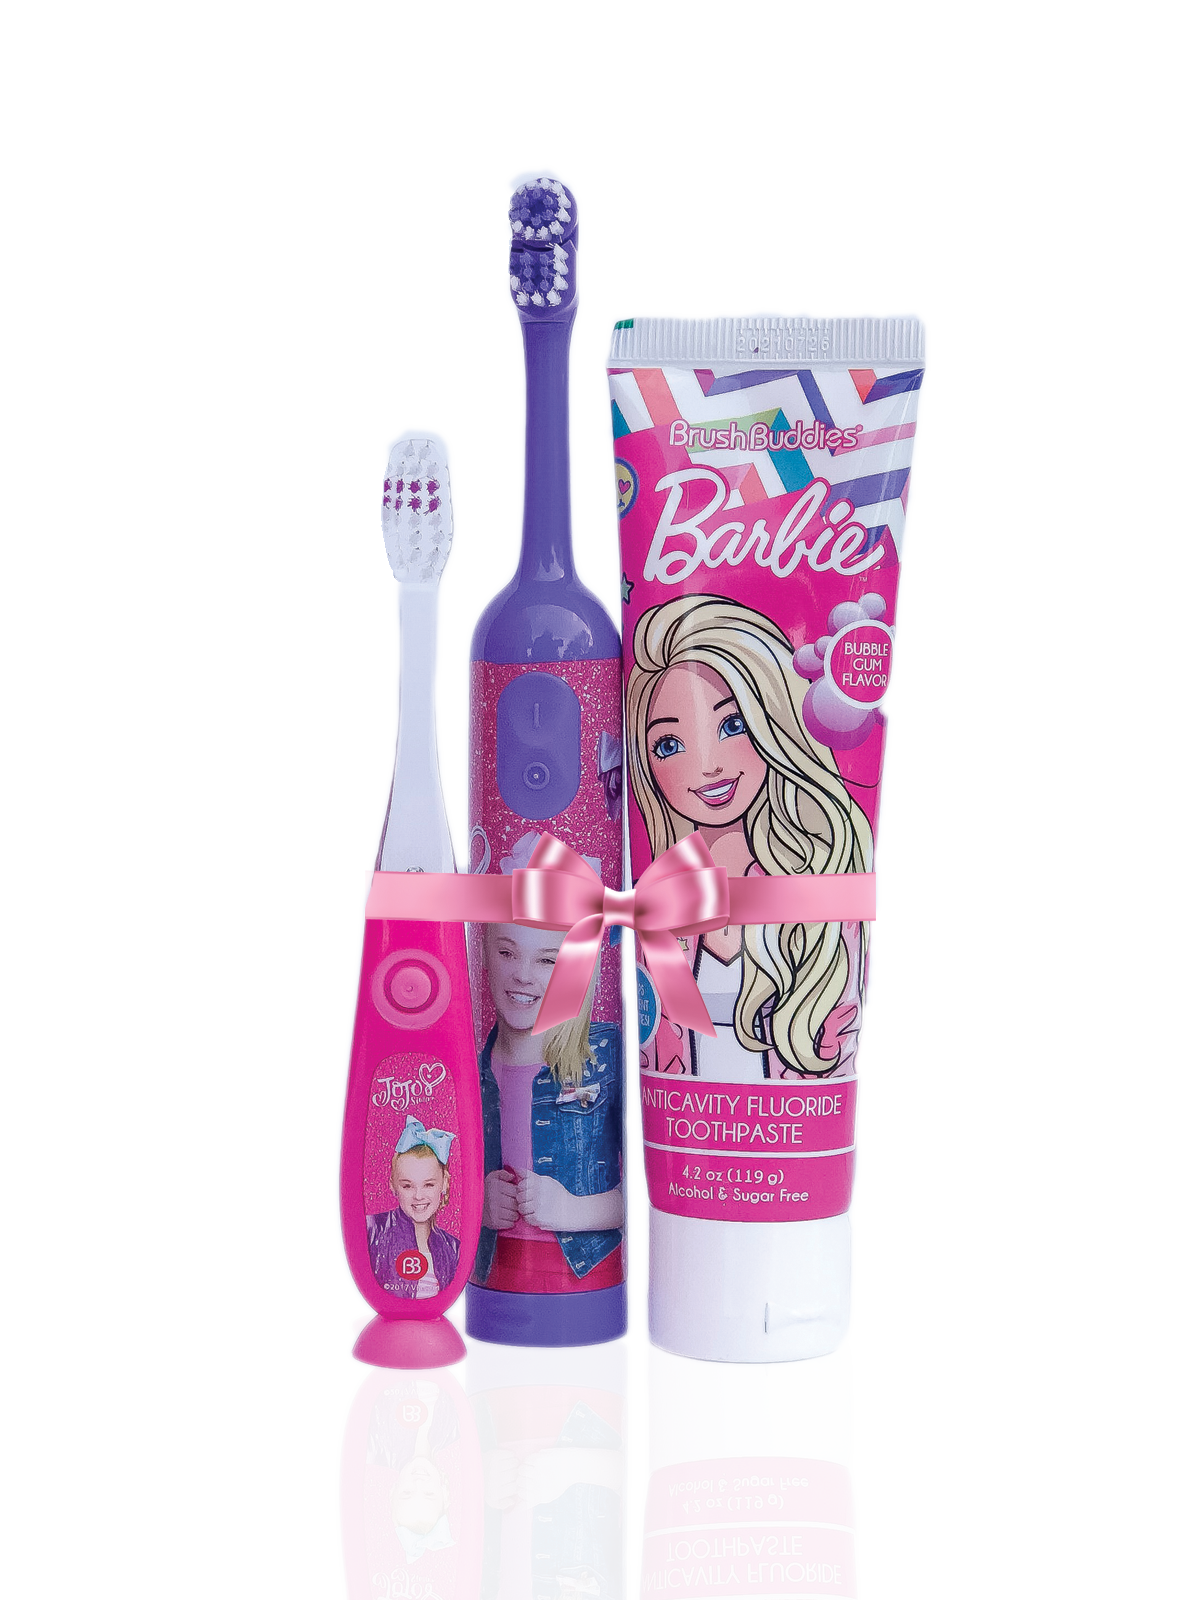 JoJo Siwa Flash + JoJo Siwa Electric toothbrush + Barbie